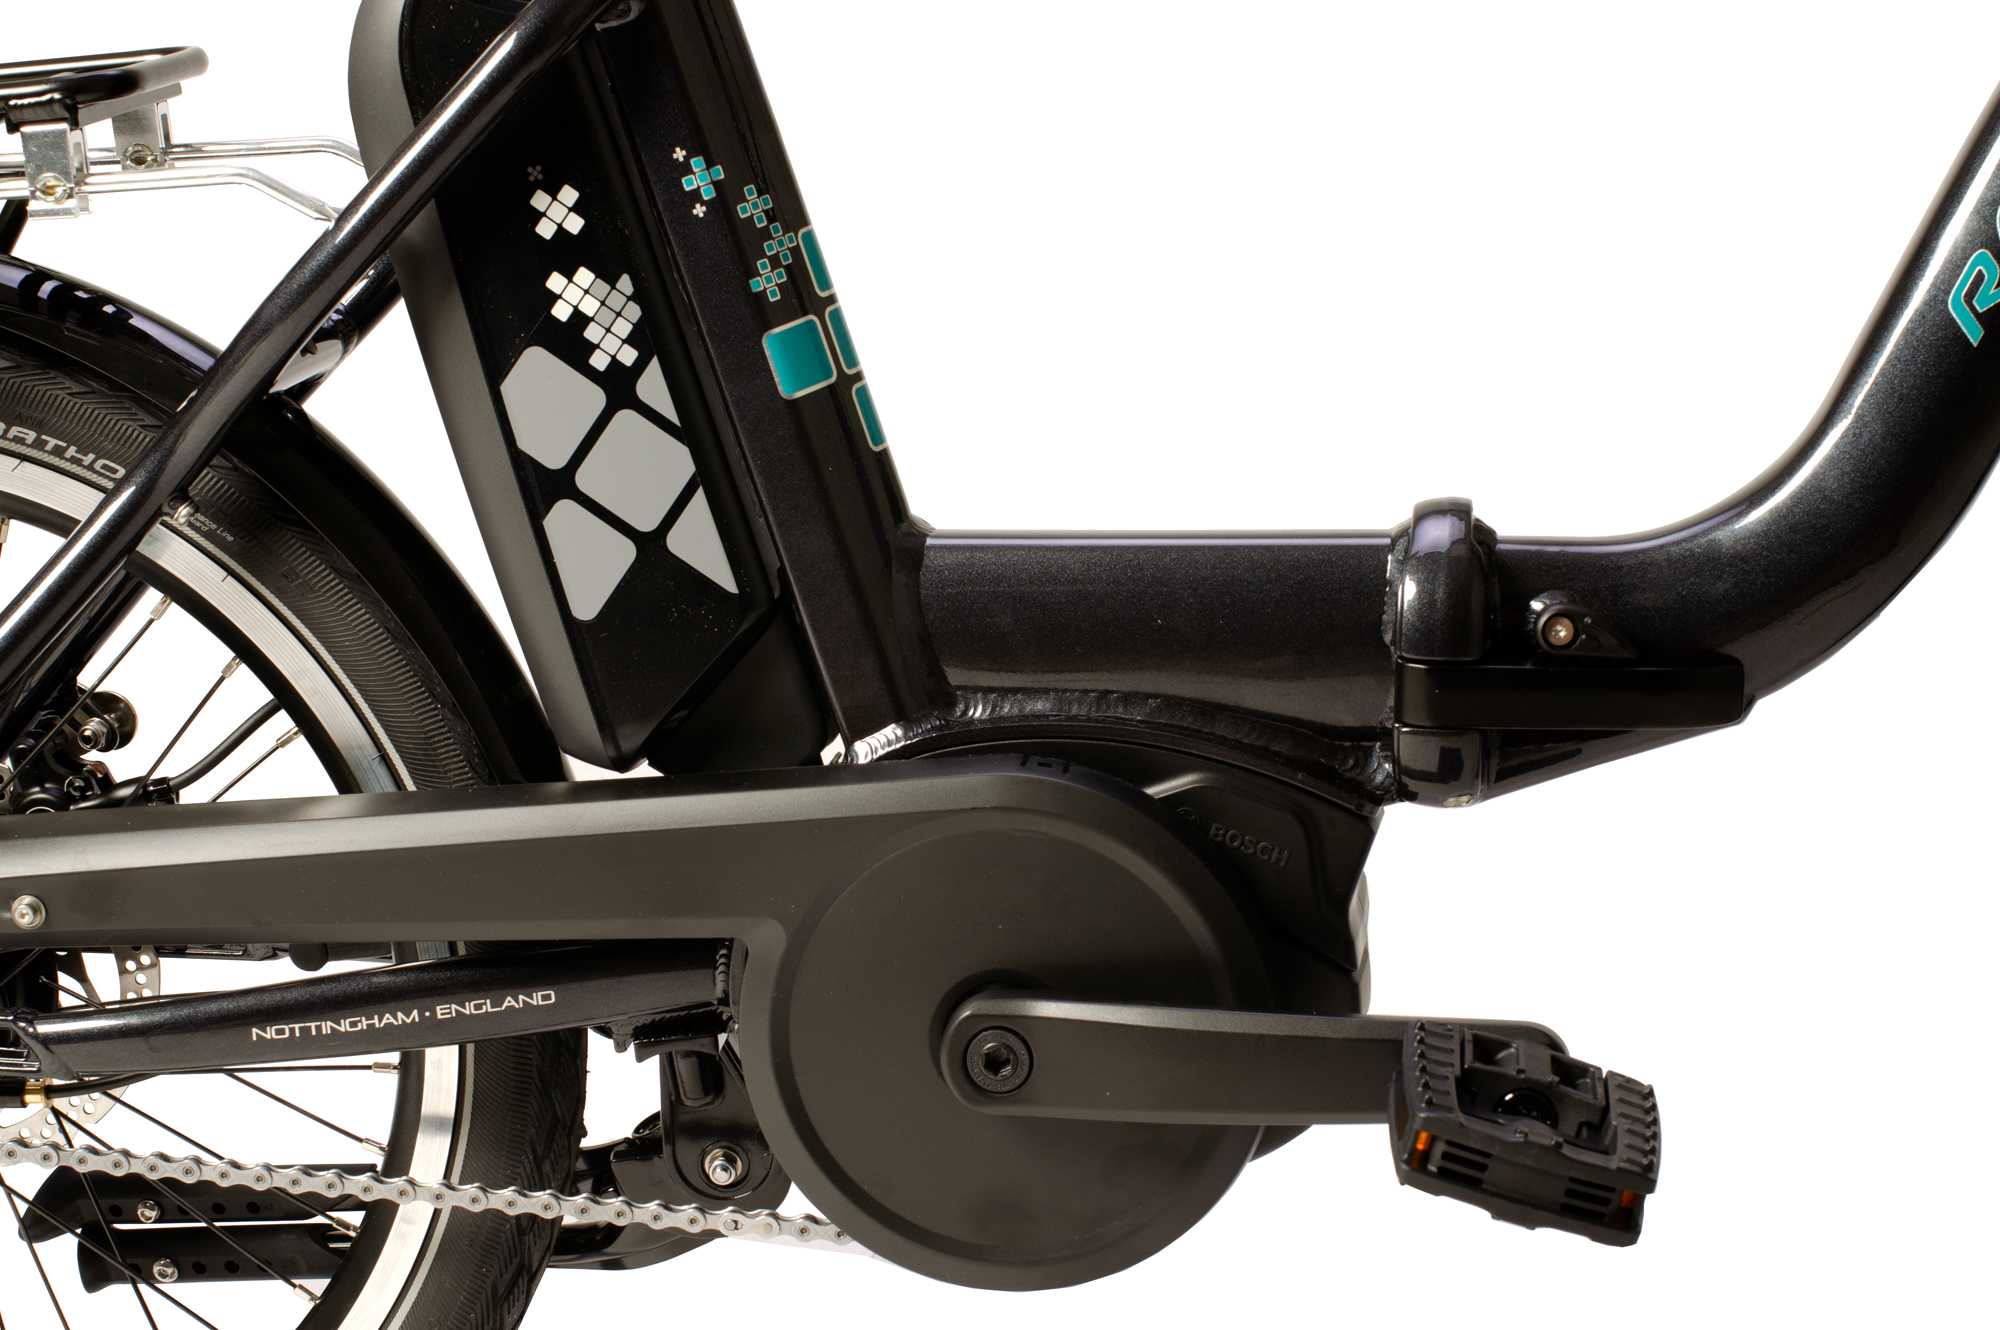 Detail view of battery and crank on the Raleigh Kompact electric folding bike